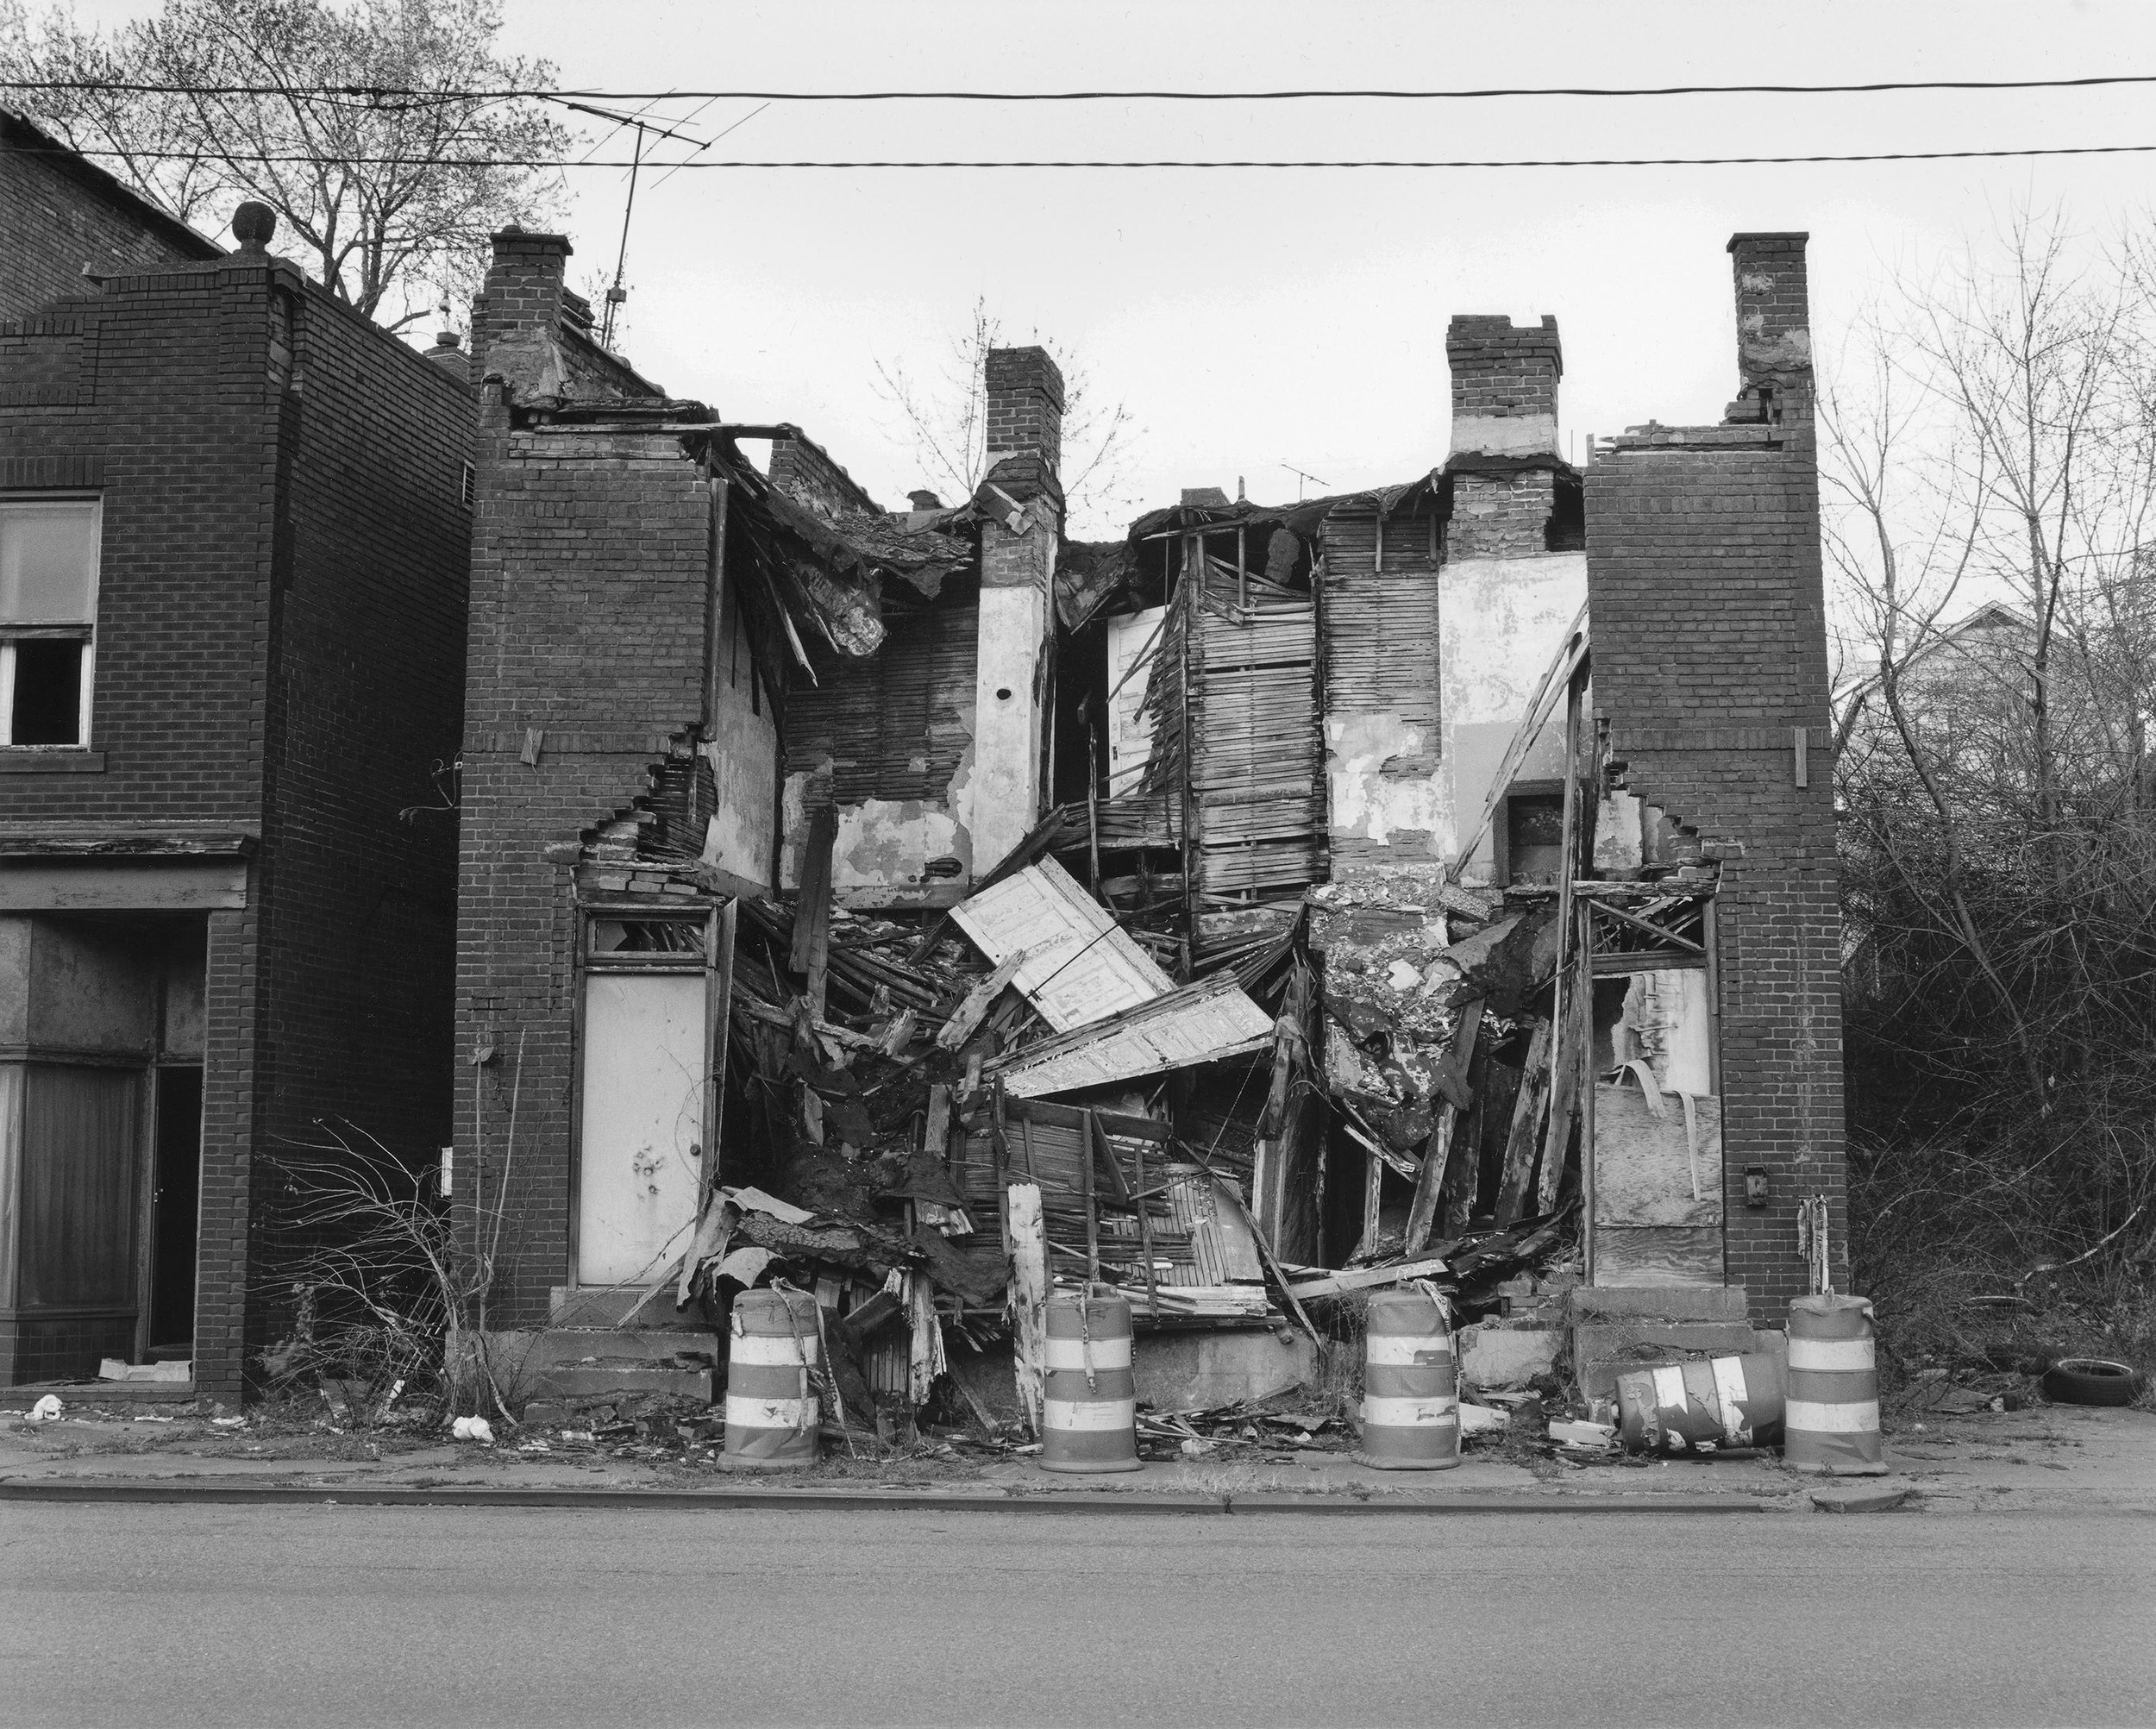 LaToya Ruby Frazier,  Home on Braddock Avenue , 2007, from  The Notion of Family  (Aperture, 2014)